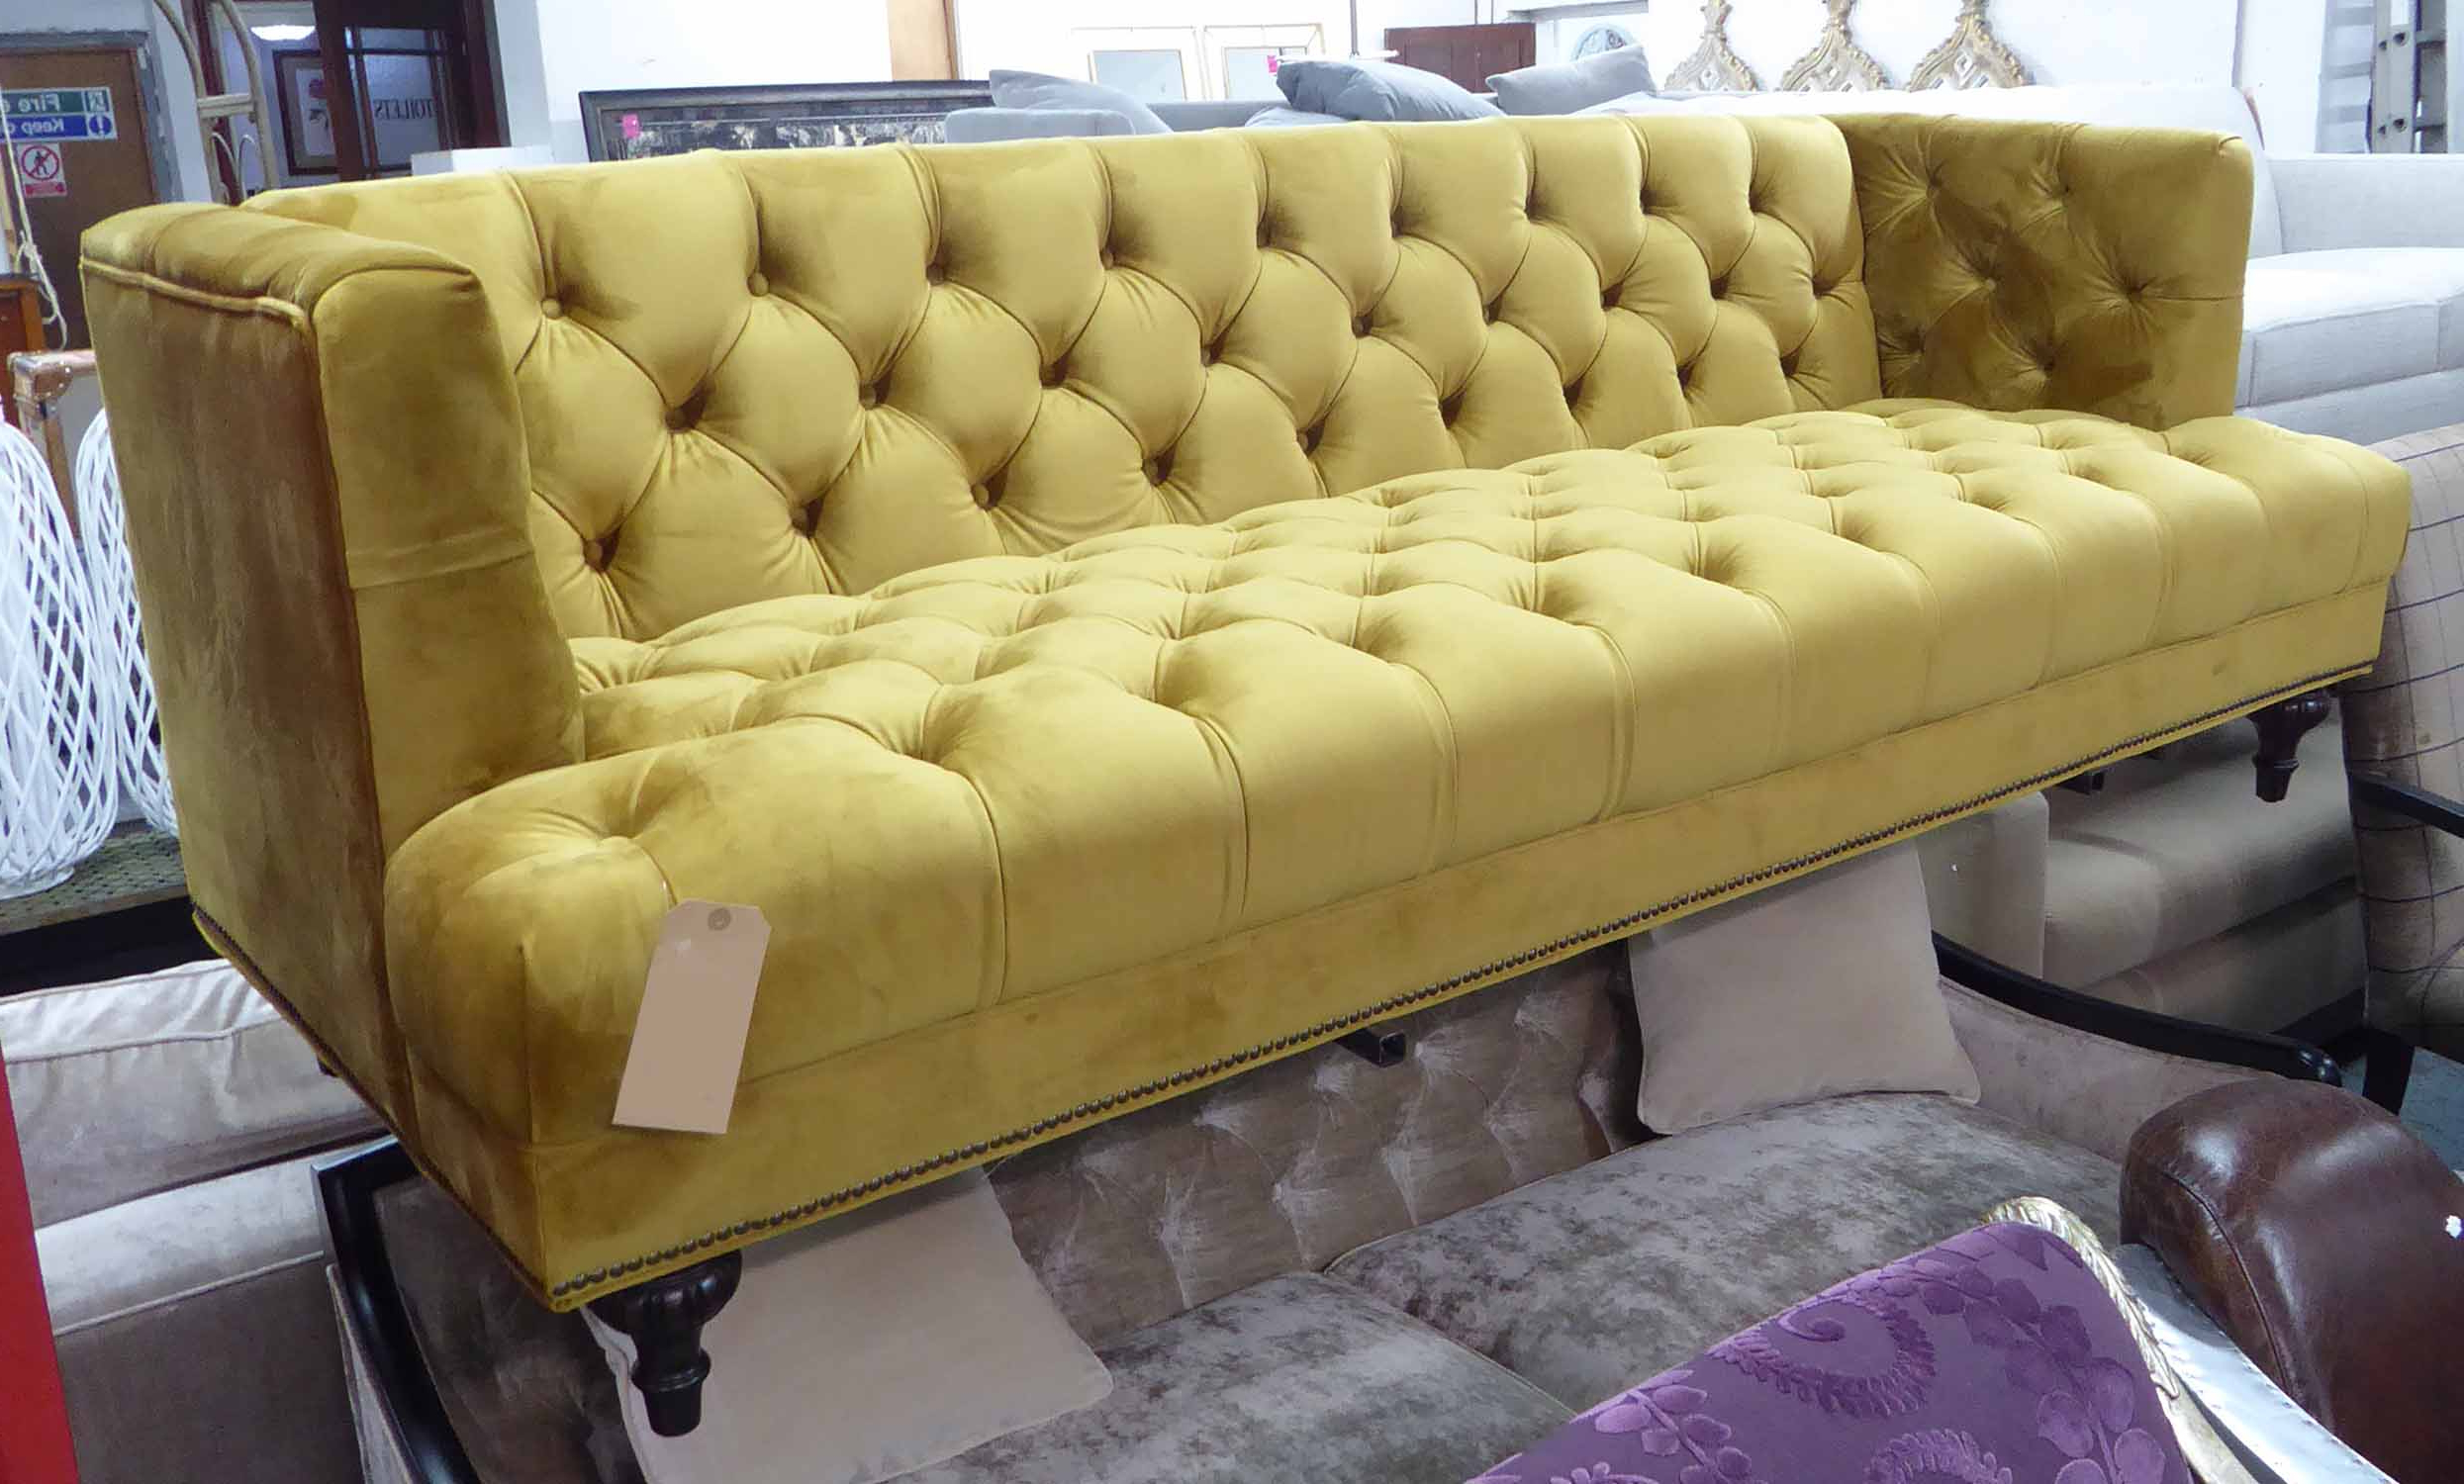 French Seamed Sectional Sofas Oblong Mustard Pertaining To 2019 Artsome For Coach House Sofa, Mustard Buttoned Finish (View 4 of 20)